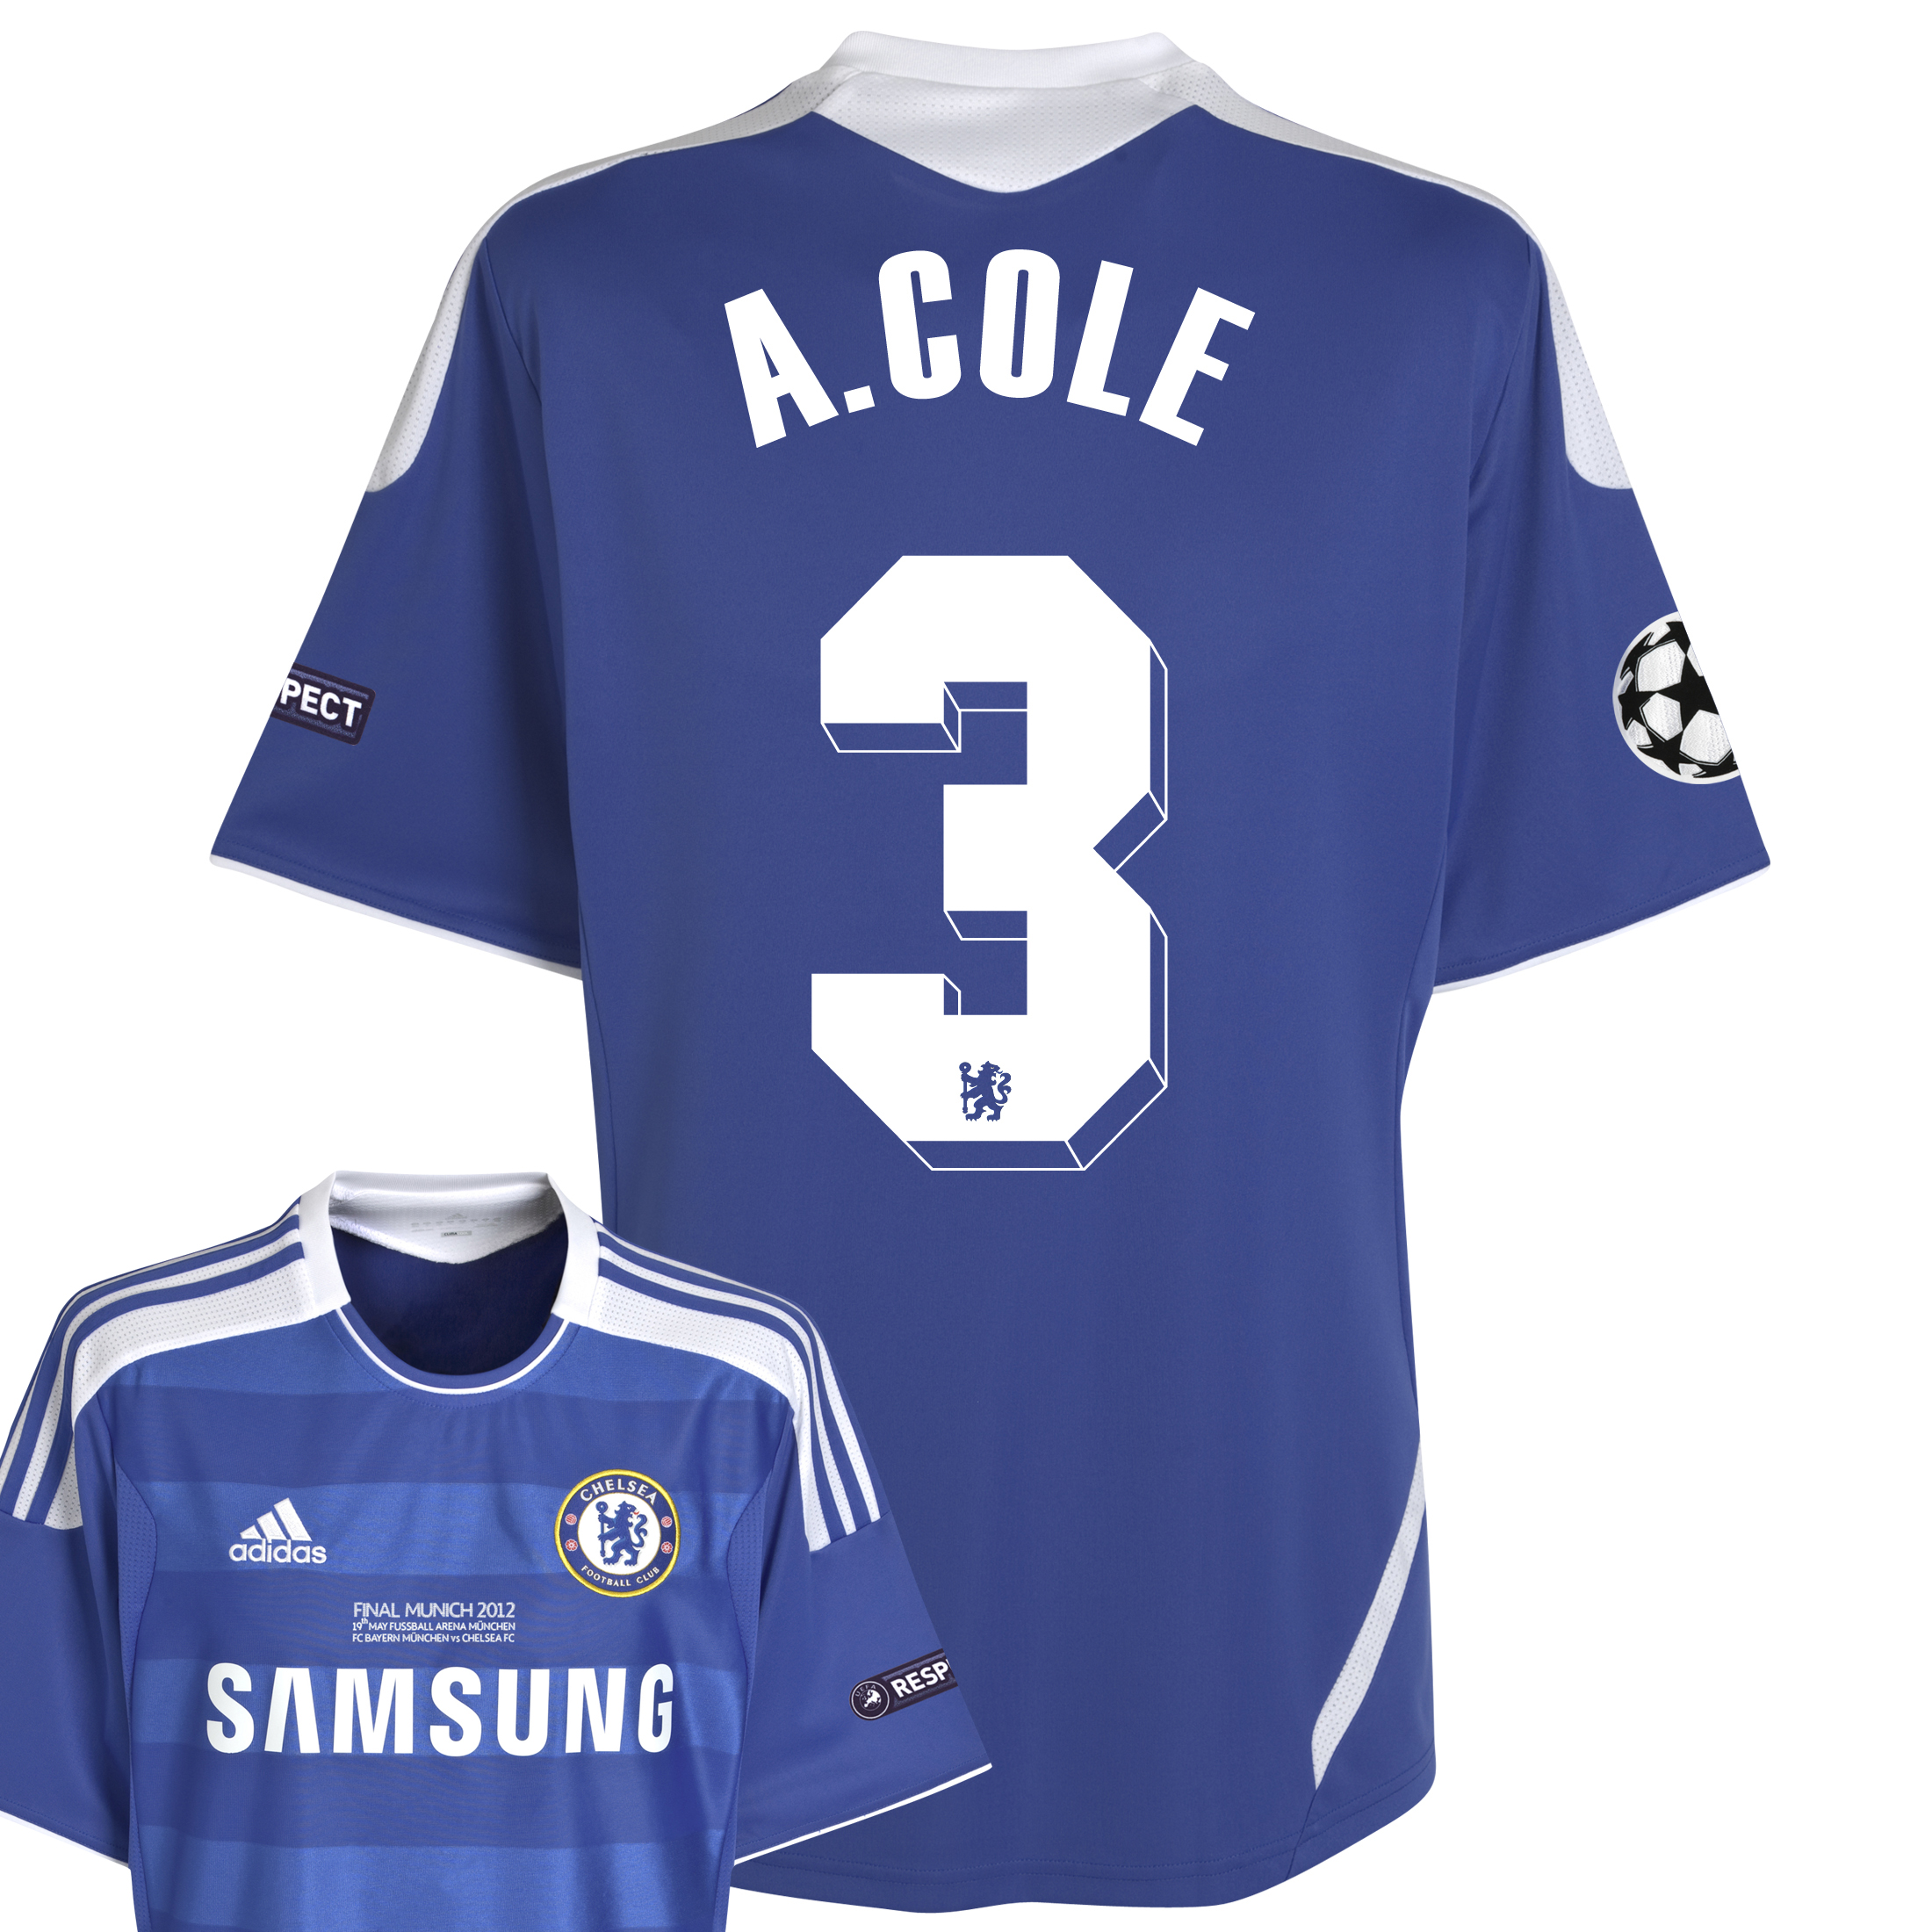 Chelsea Home Shirt 2011/12 Including Champions League Final Embroidery - Kids with A.Cole 3 printing